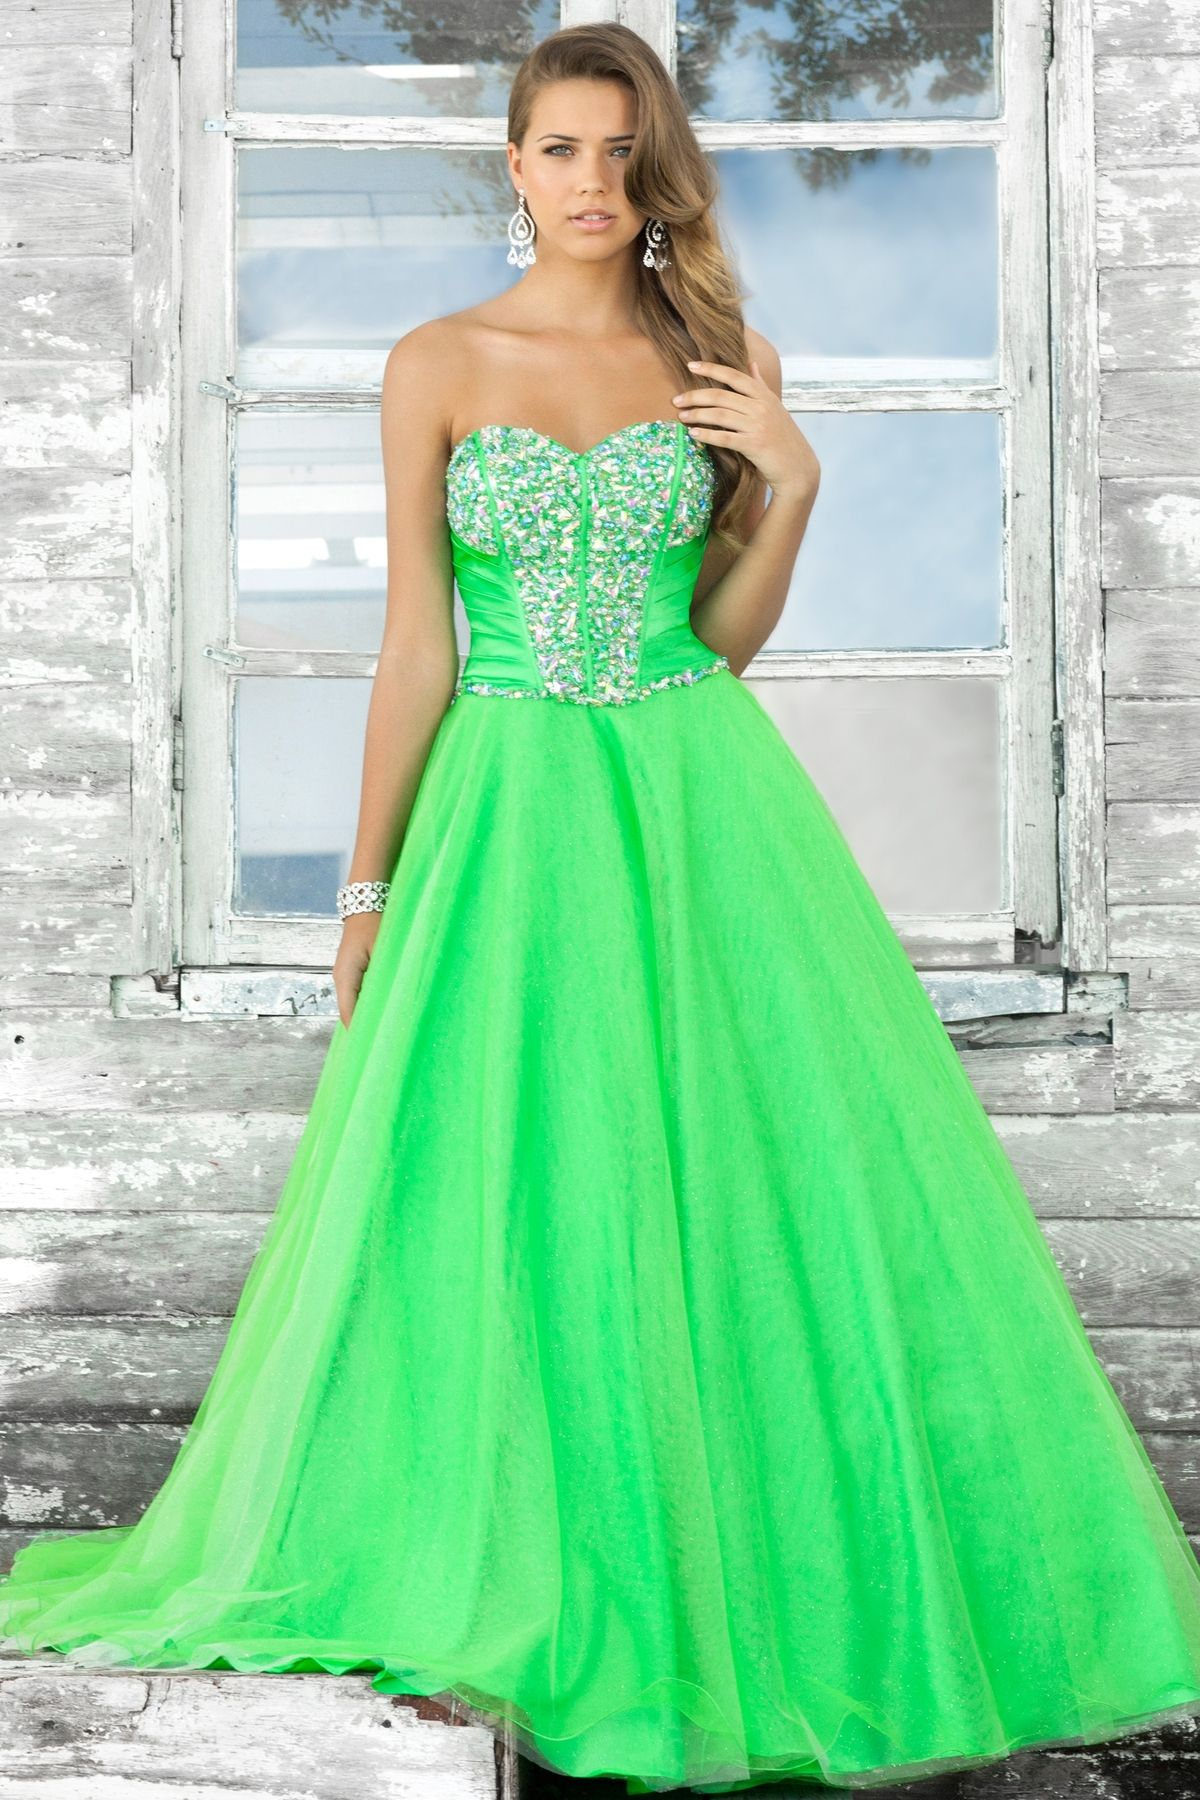 Neon Green Prom Dresses | Neon Green And White Wedding Dresses ...